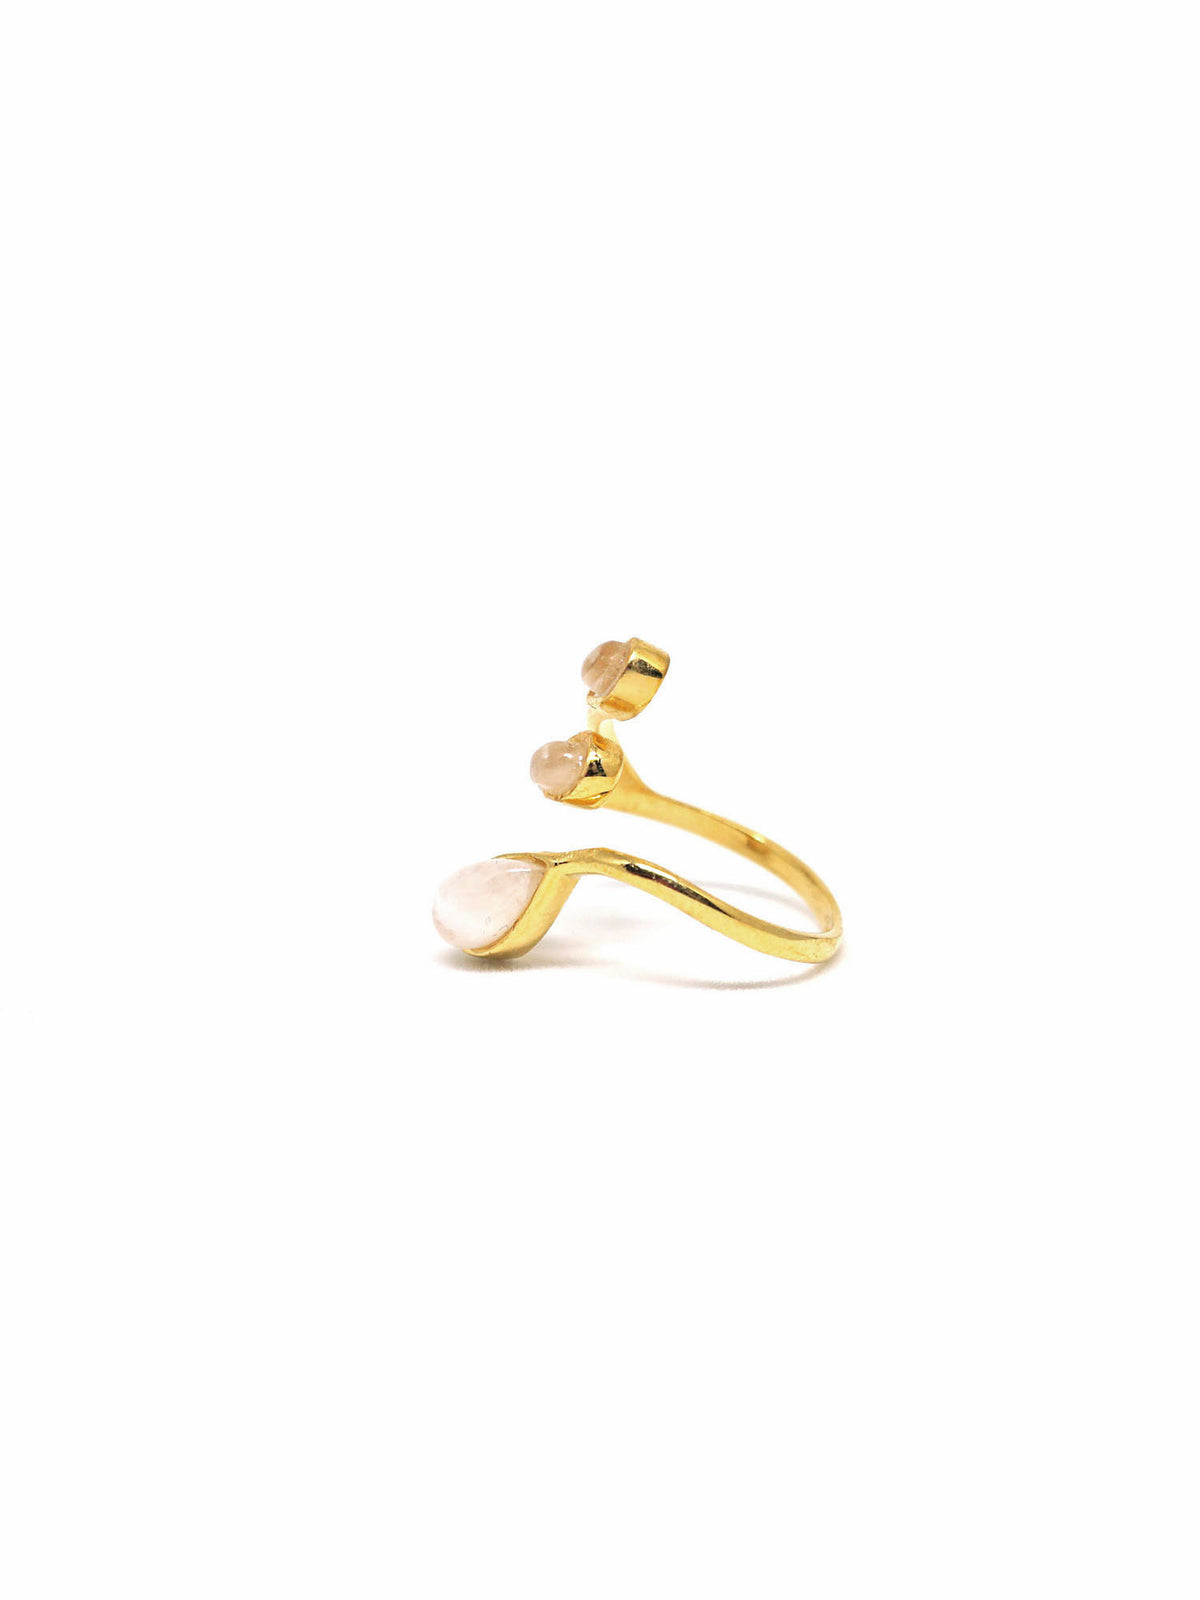 Dew Trio Ring - Gold - Moonstone